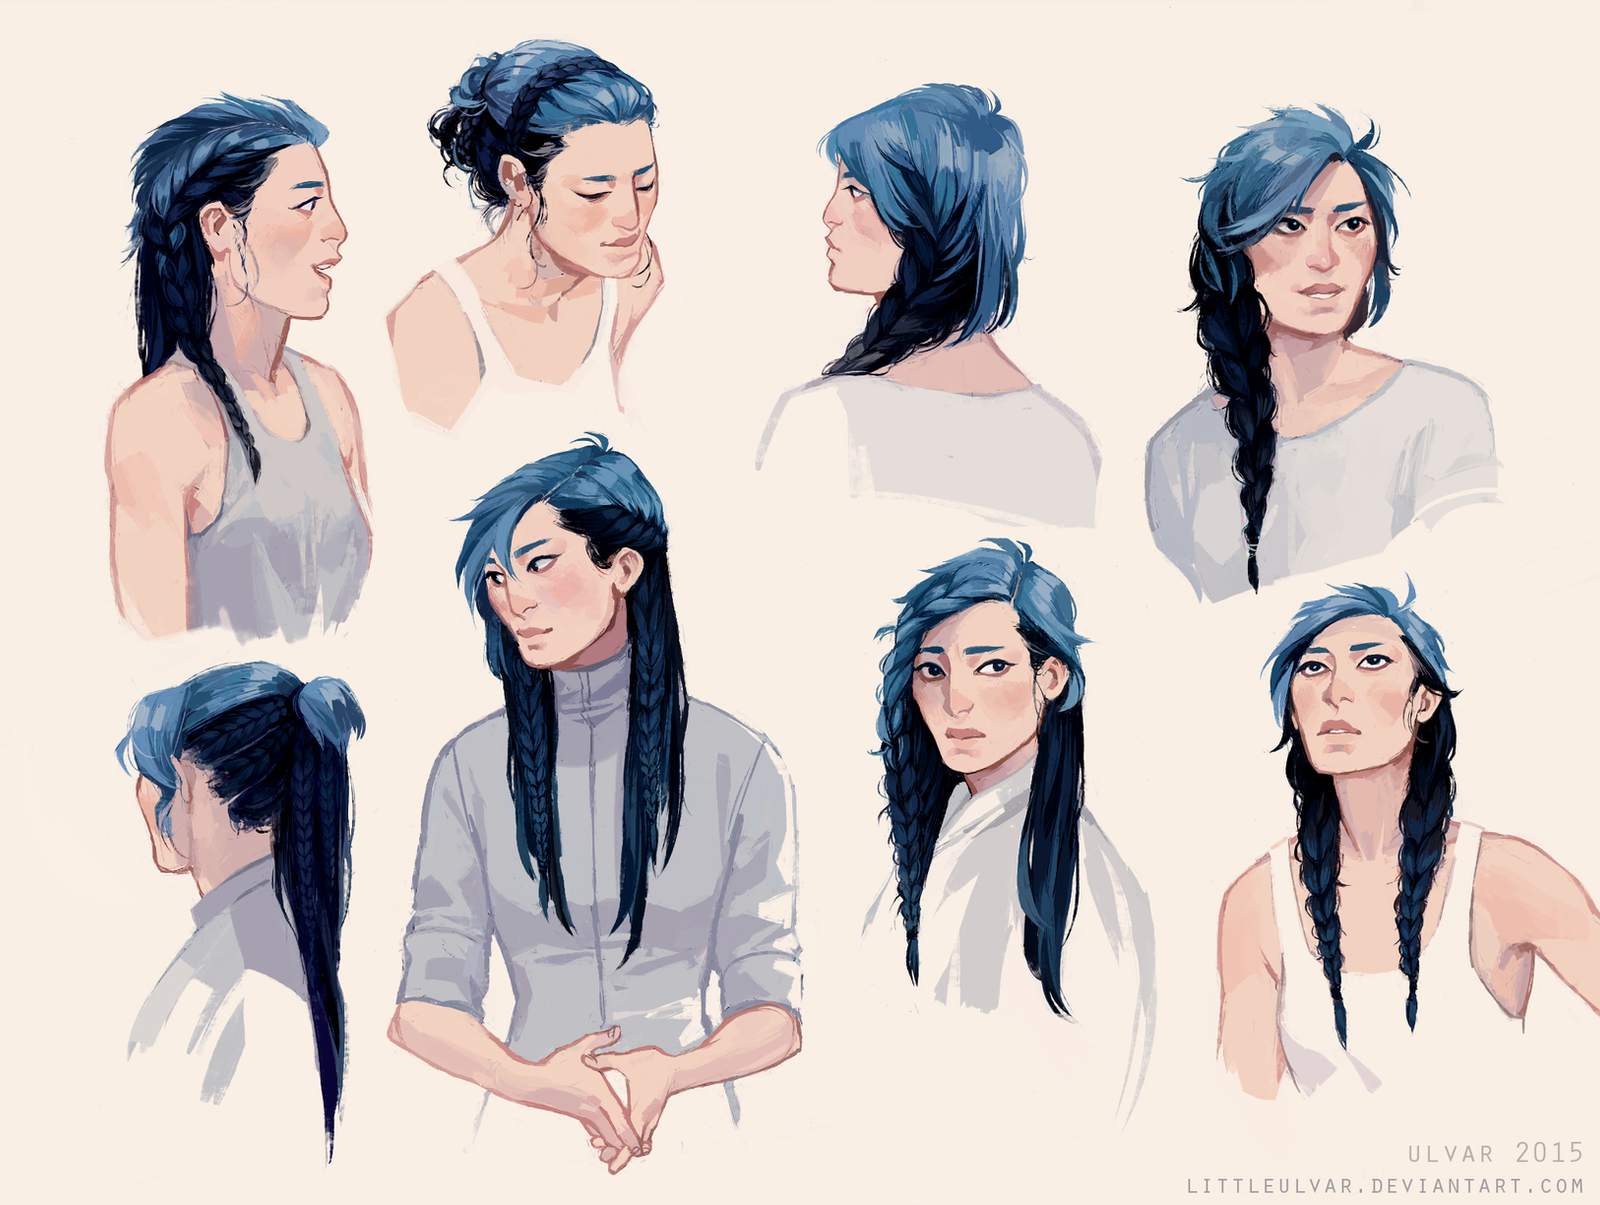 http://img06.deviantart.net/dd8f/i/2015/131/2/9/rock_the_braids_by_littleulvar-d8szstg.png